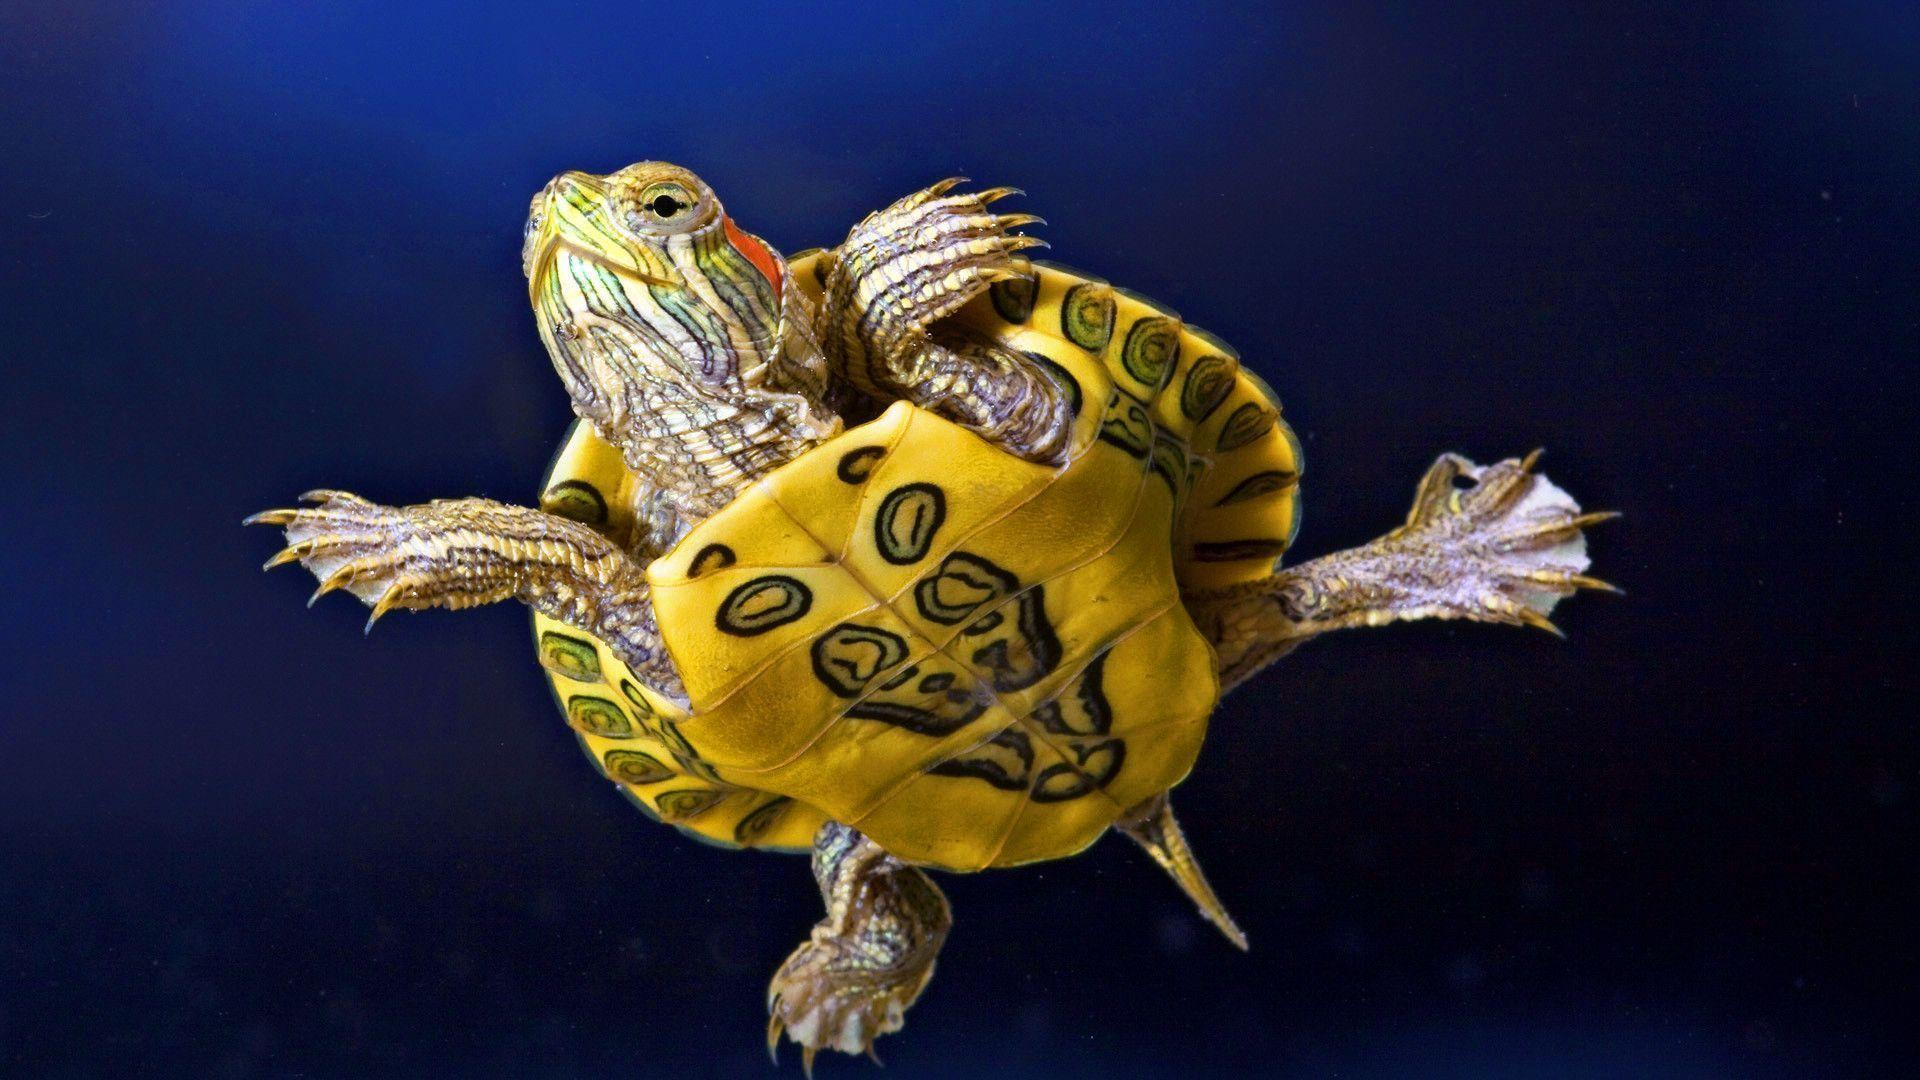 Turtle Wallpapers 4660 1920x1080 px ~ HDWallSource